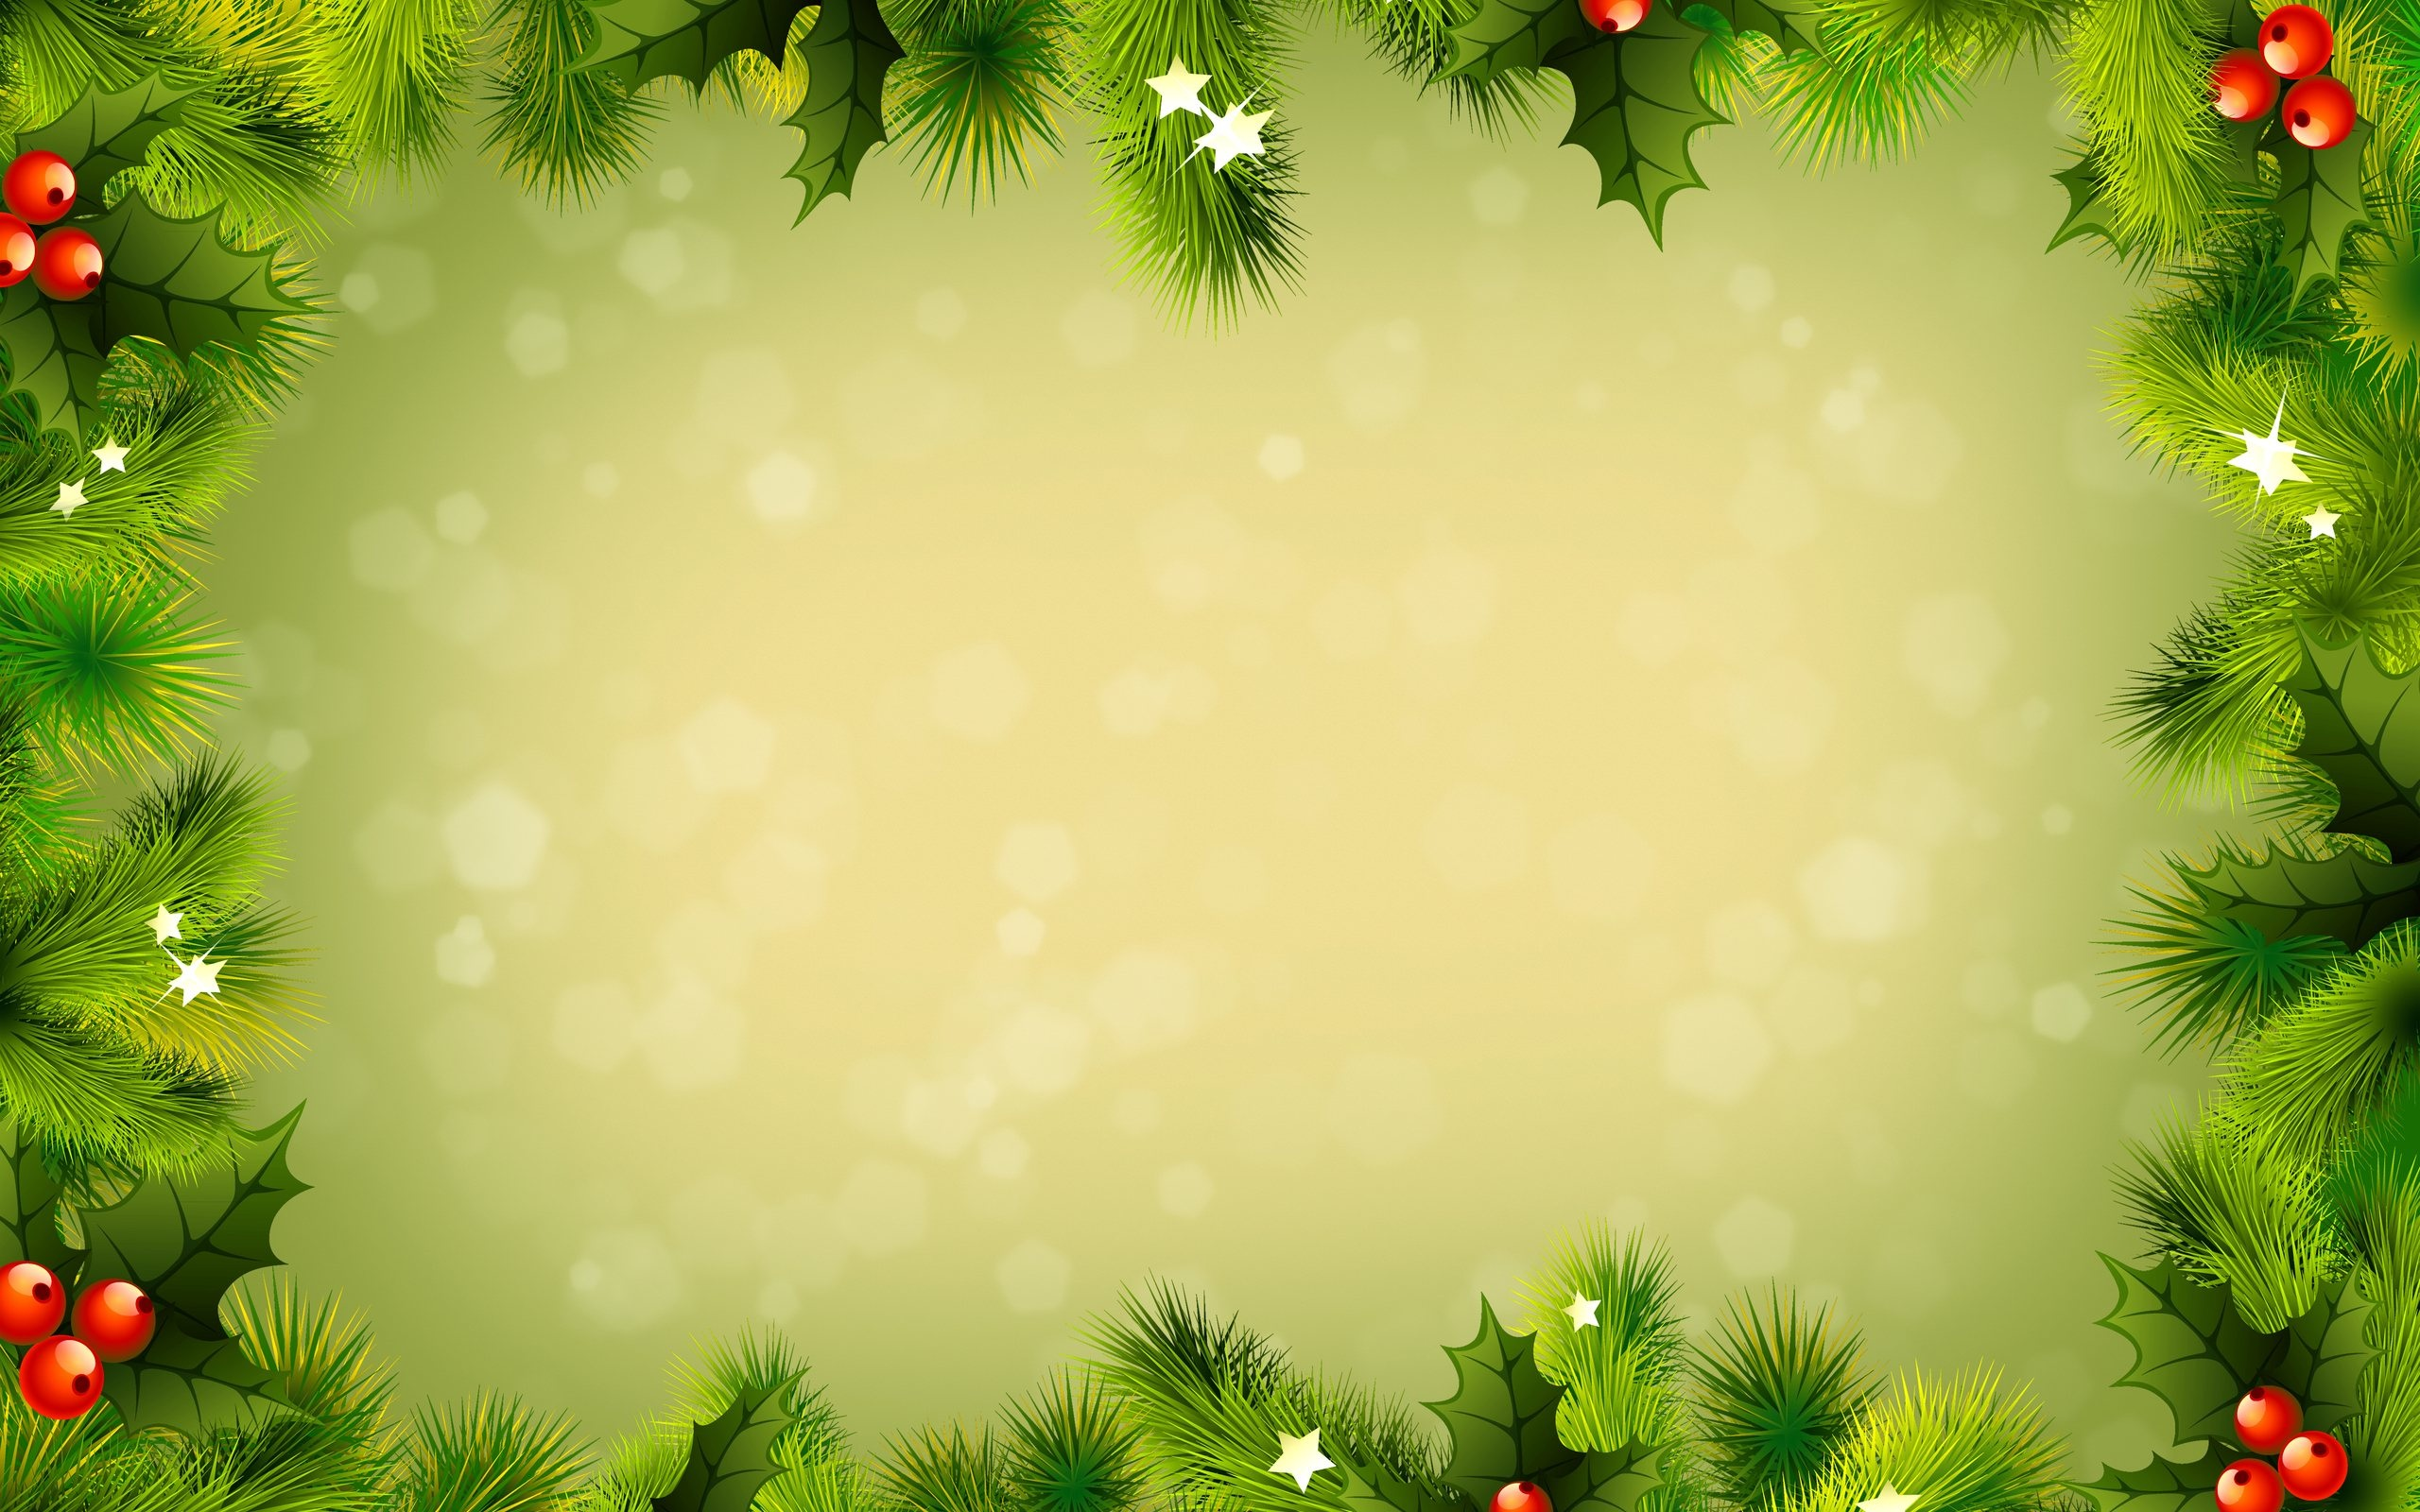 christmas background christmas background christmas background share 2560x1600